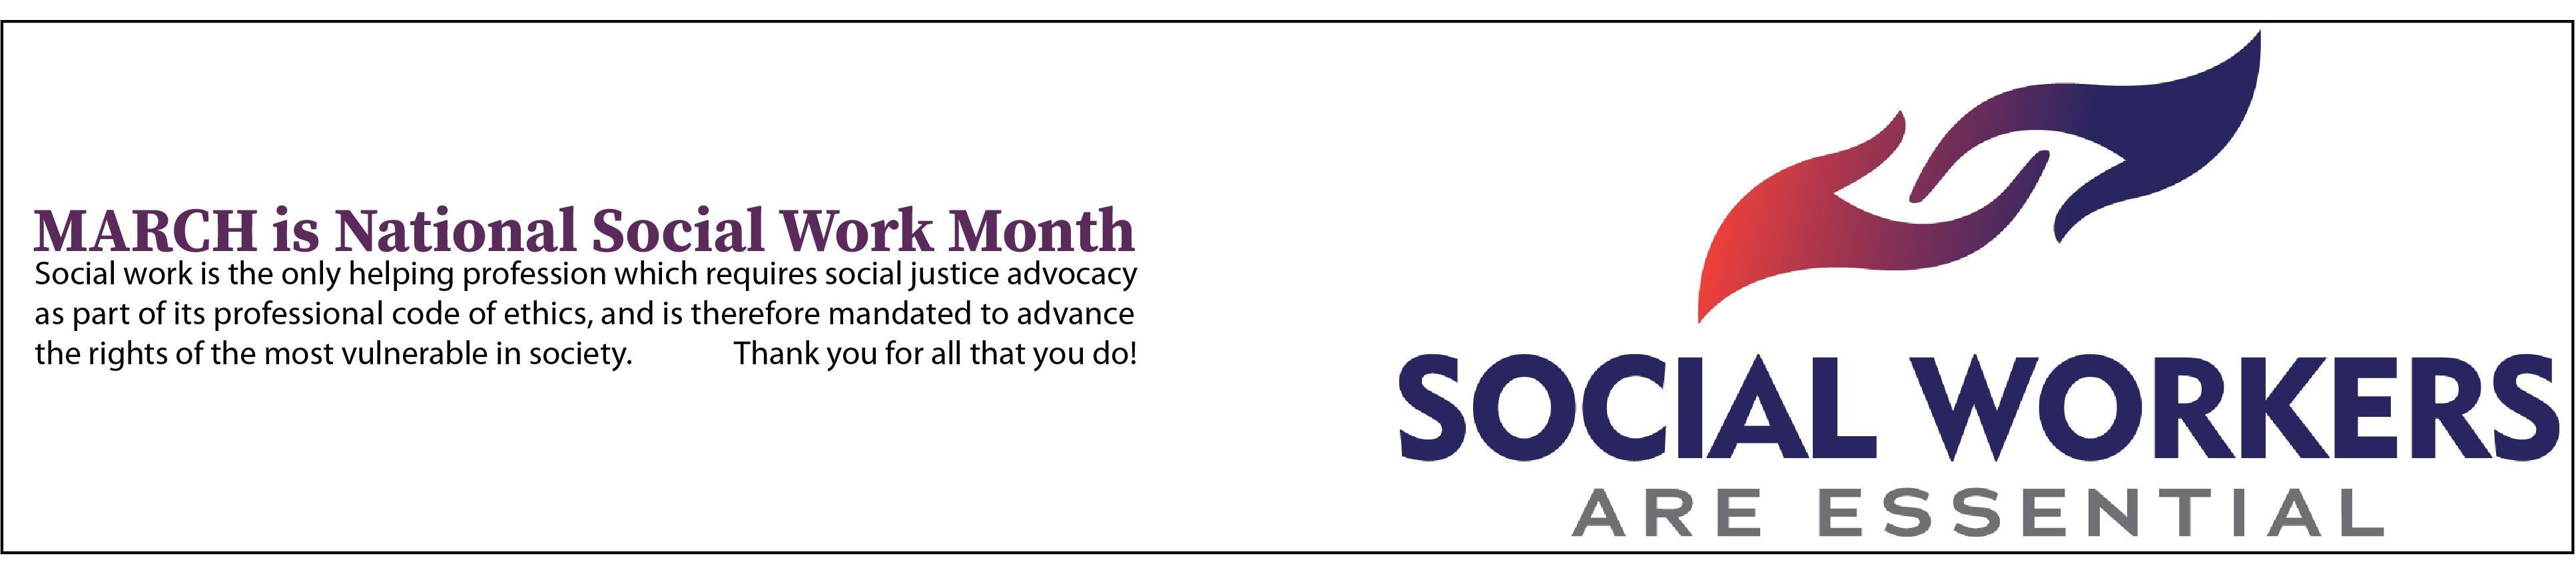 National Social Work Month - March